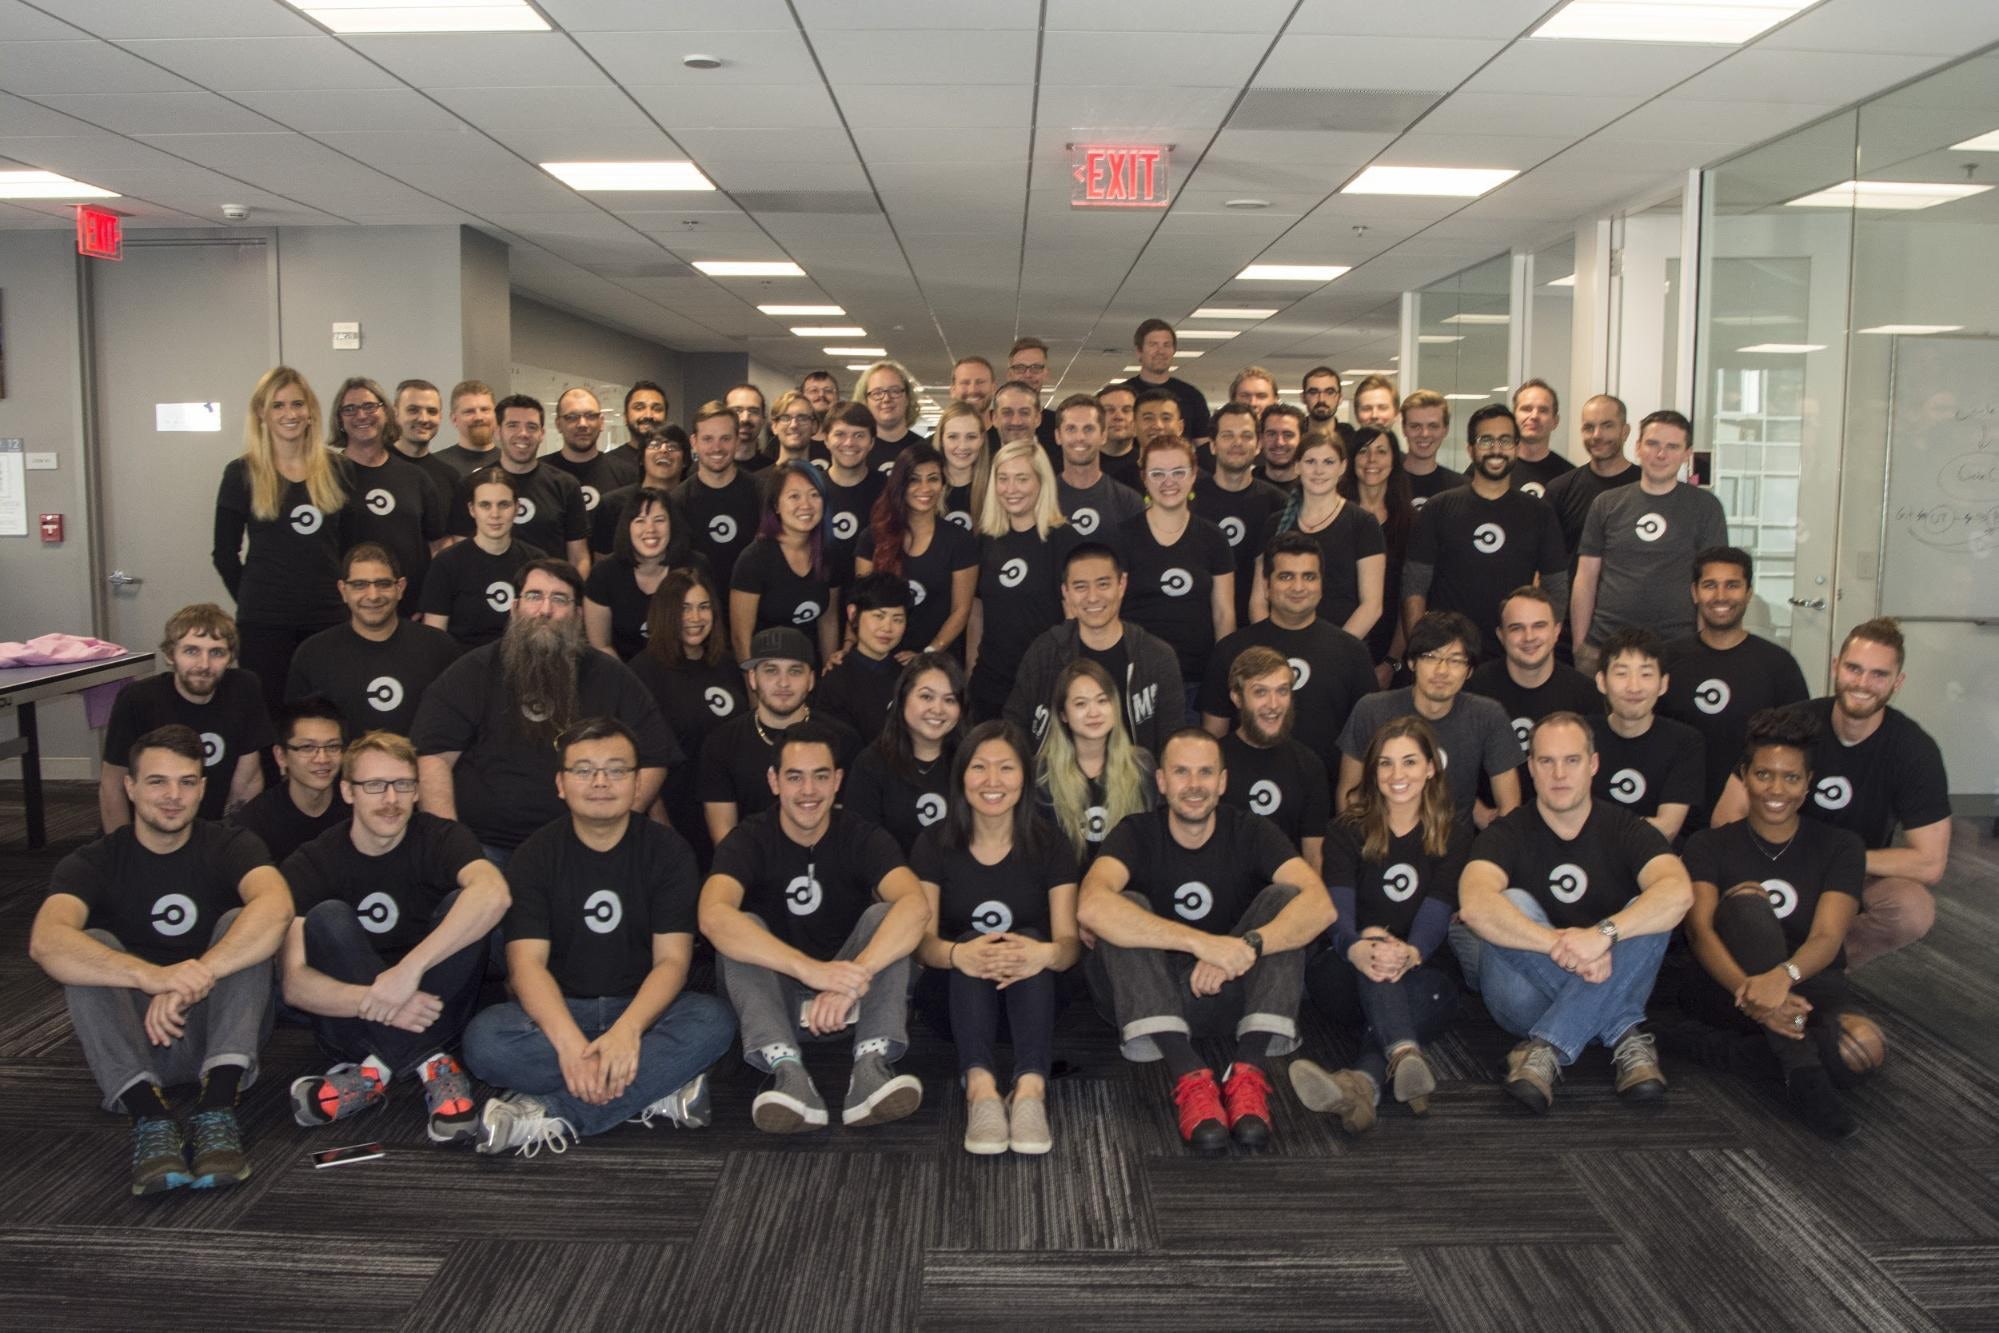 2016-12-19-why-in-person-all-hands-teampic.jpg